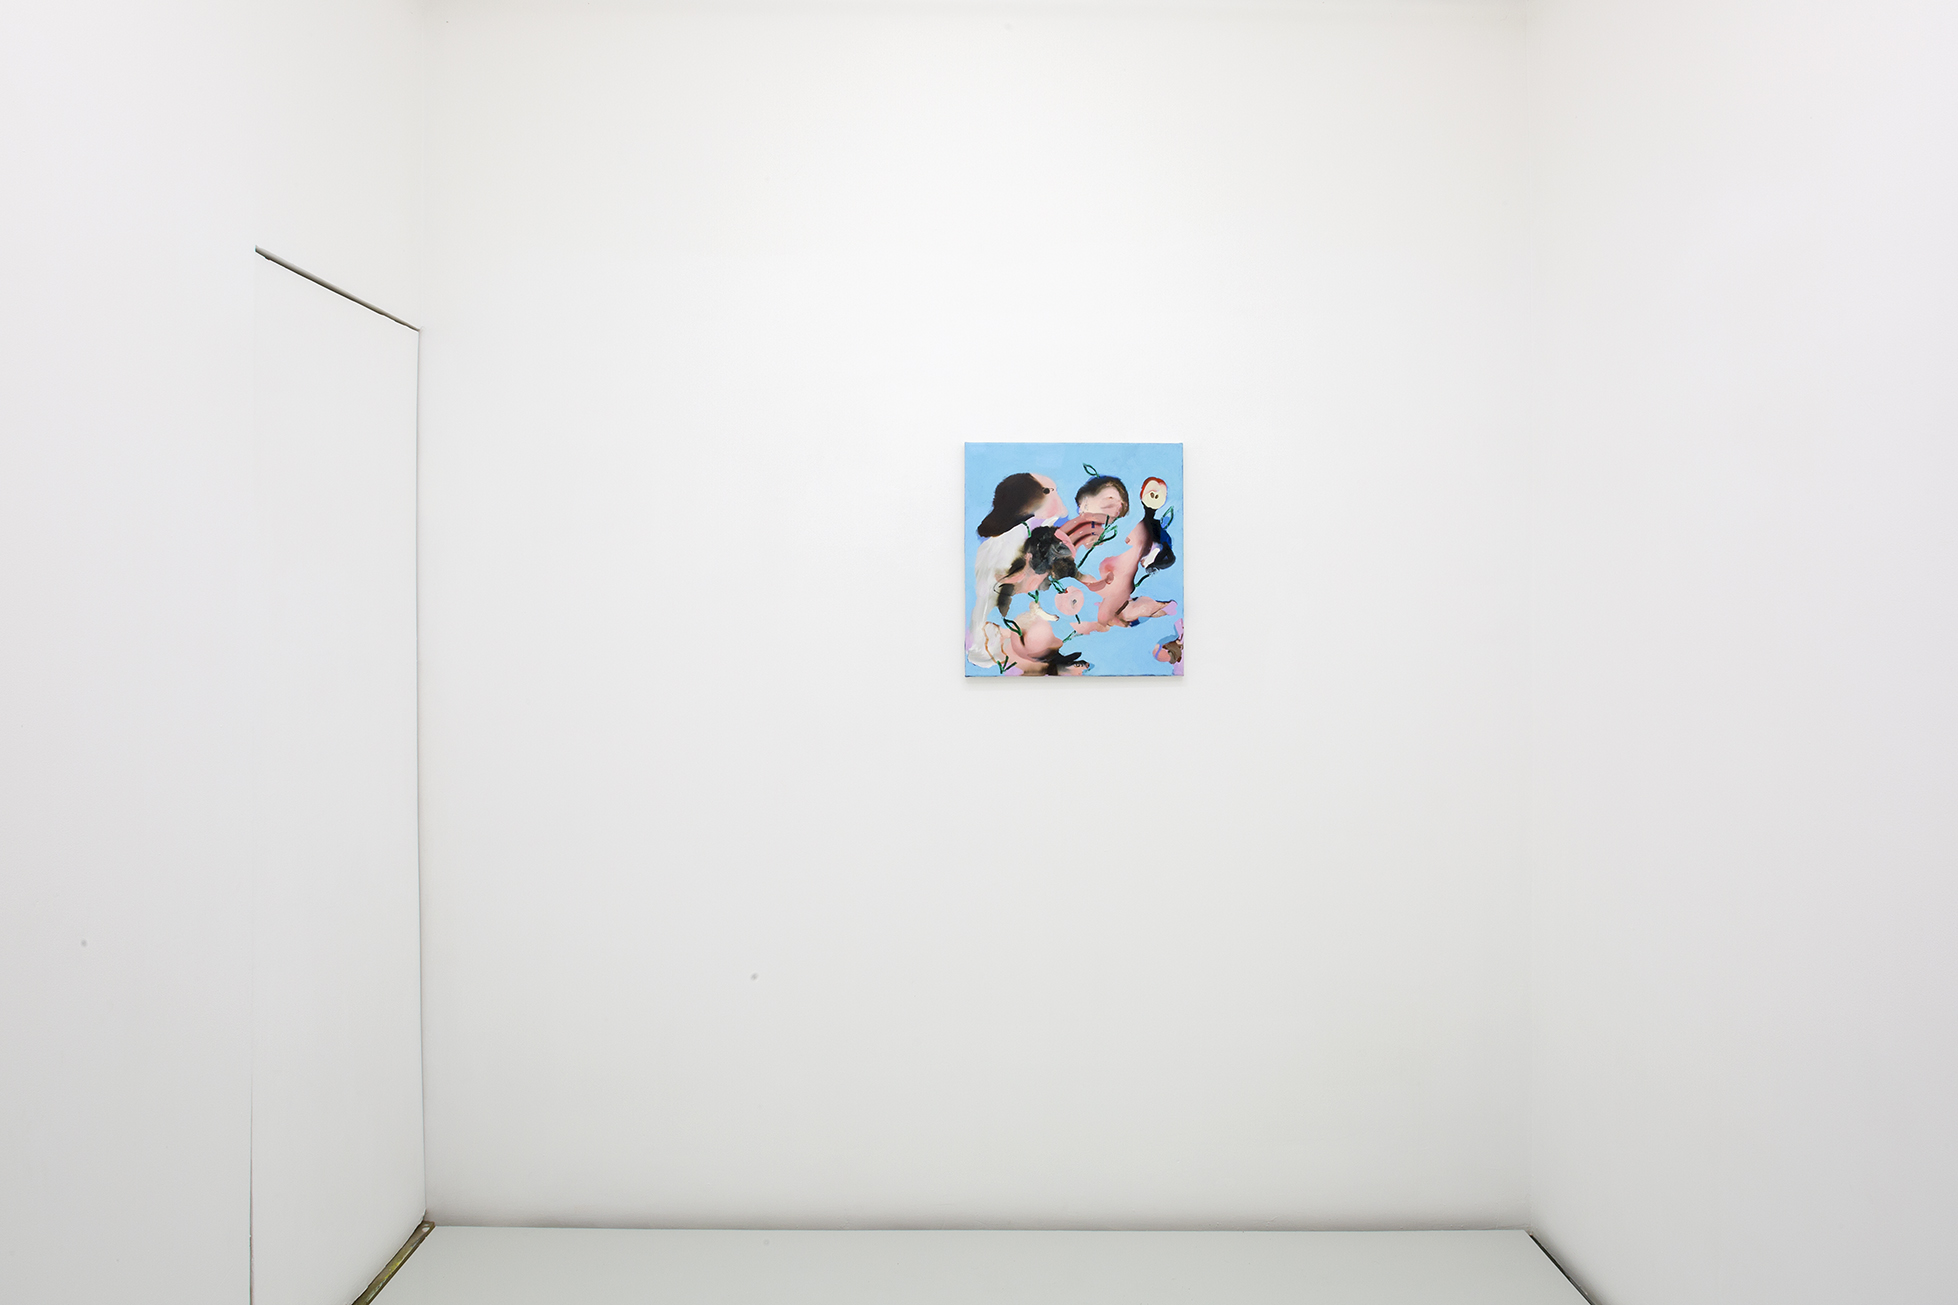 Installation View , In medias res, Lulu Mexico City